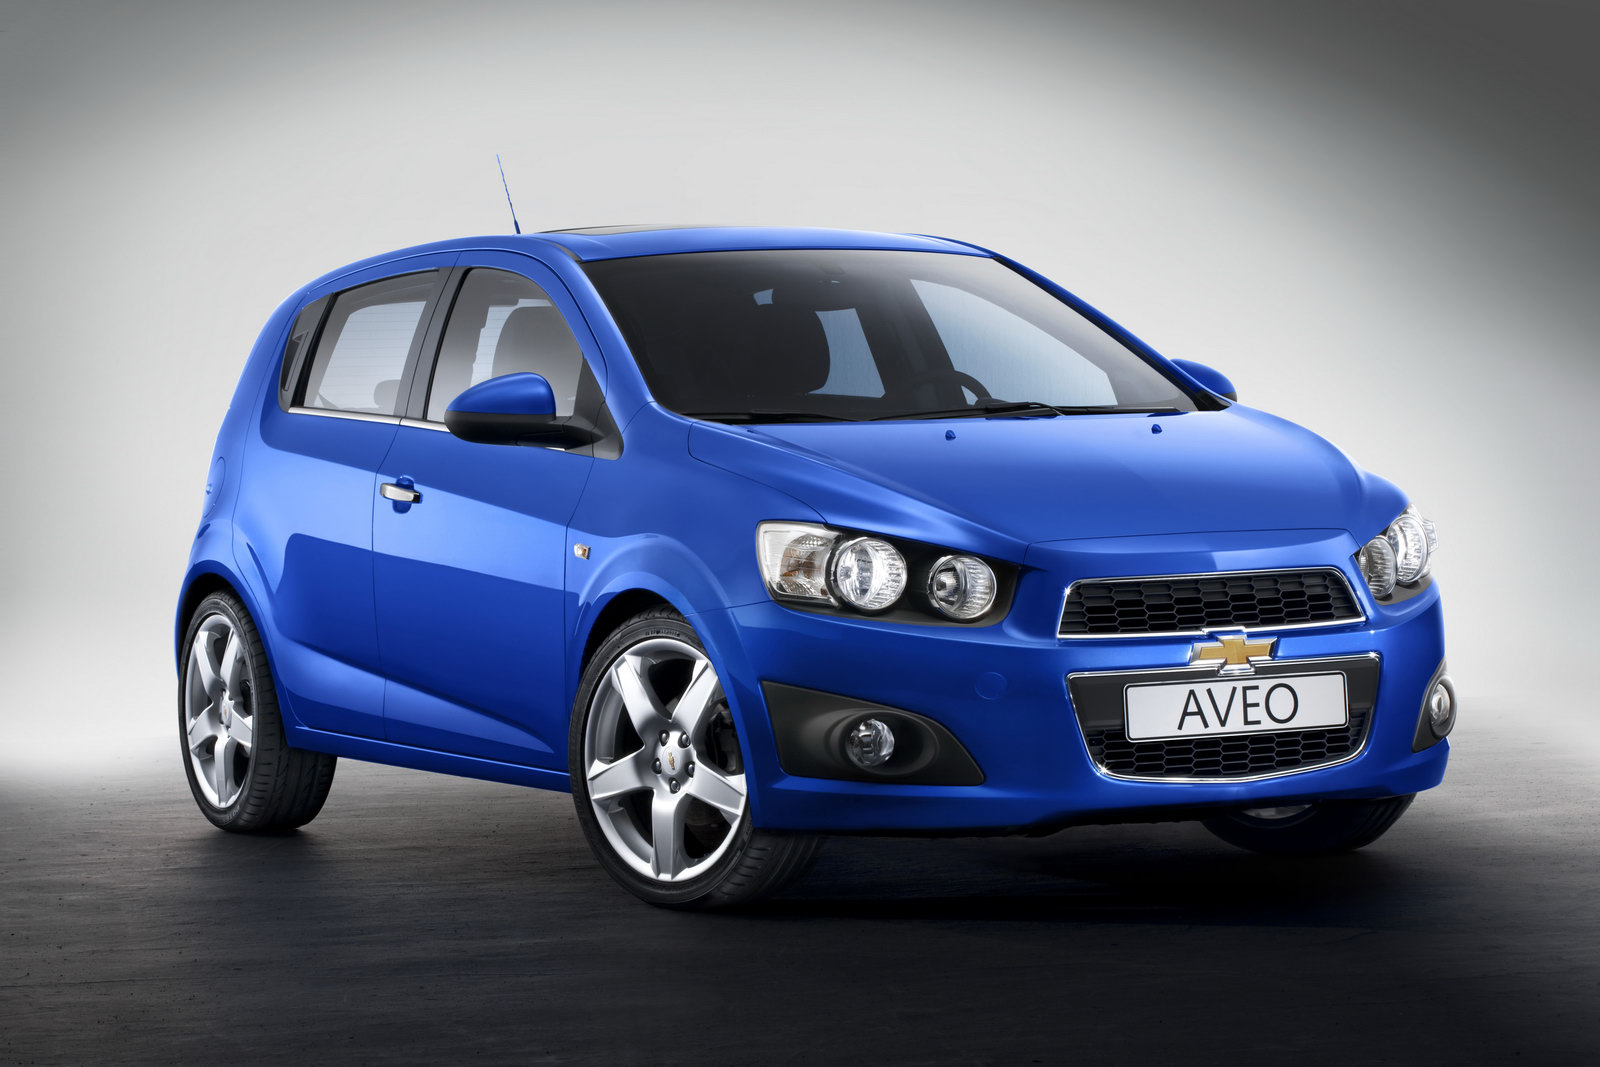 Chevrolet Aveo - not a dancing transformer, but a realistic car  #6